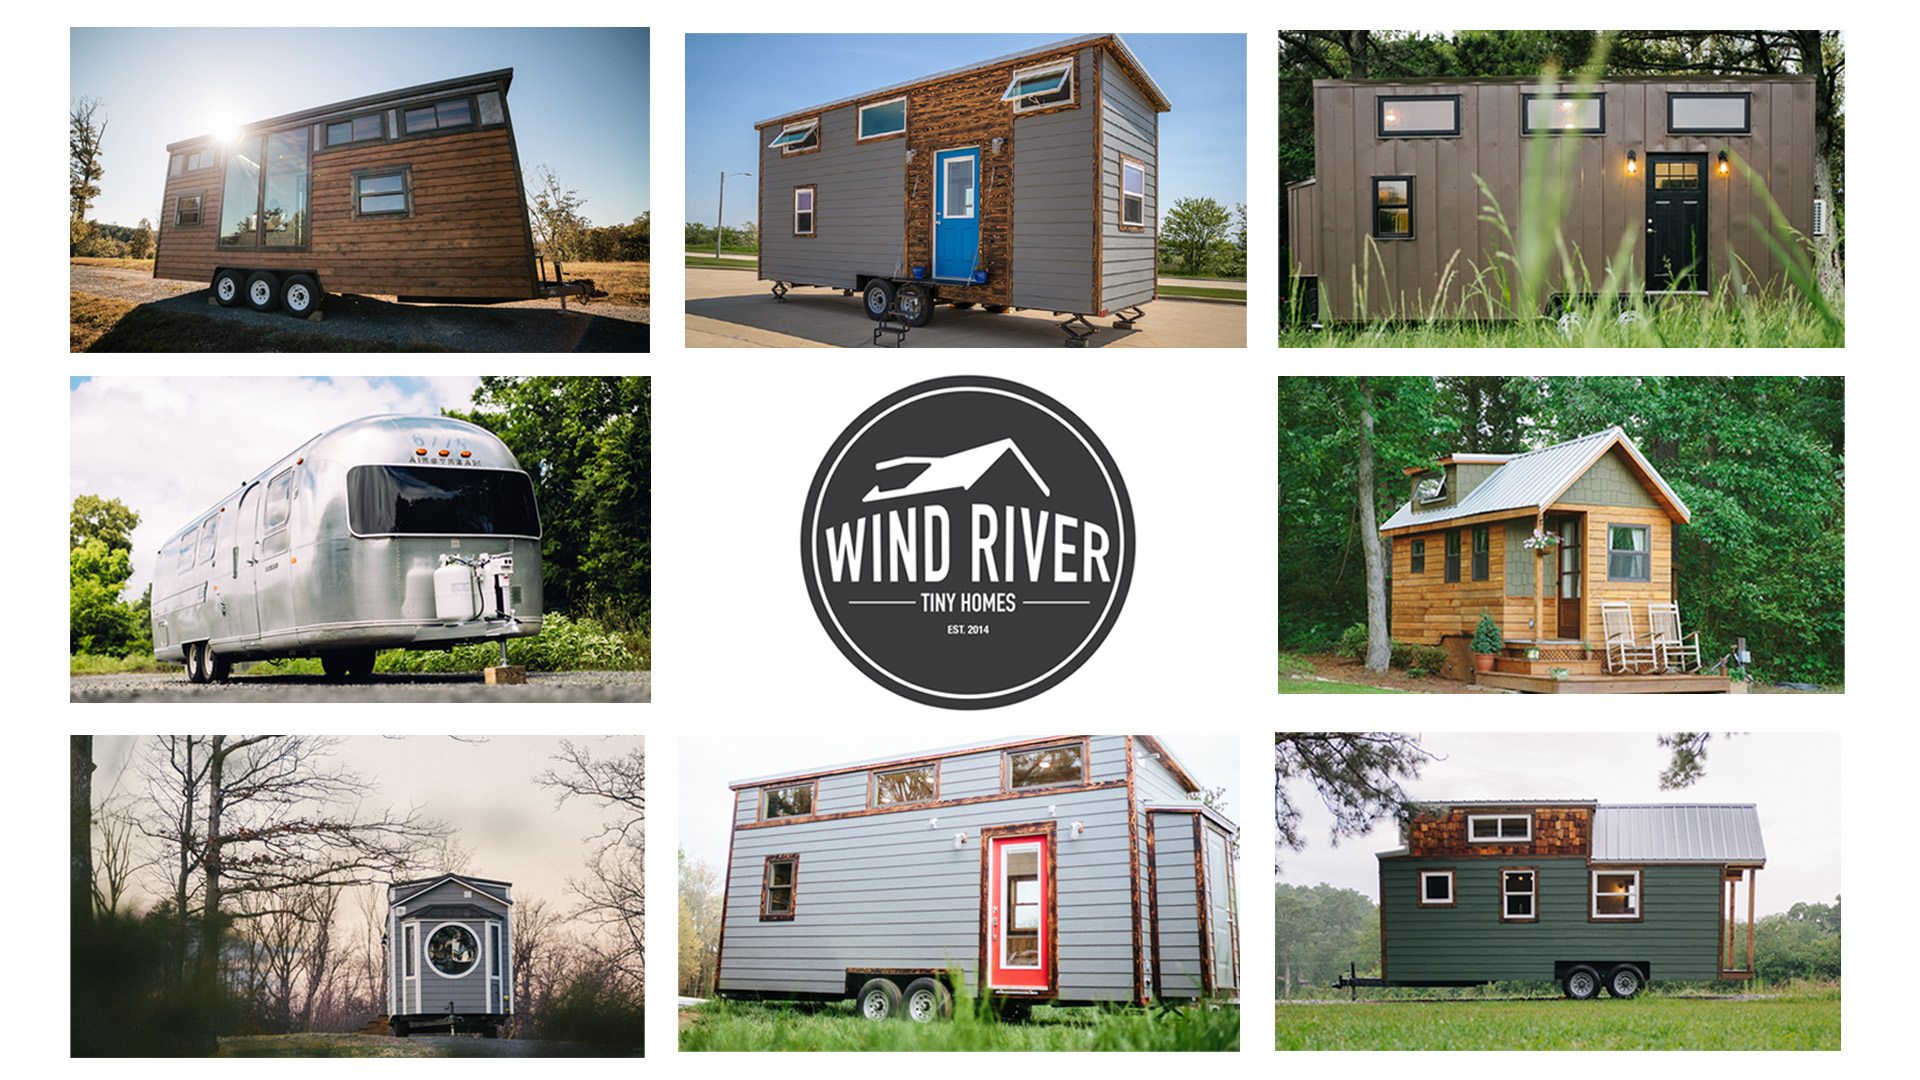 Wind River Tiny Homes on mobile homes in florida, mobile storage, skyline homes dealers, mobile offices, mobile skirting, atv dealers, mobile real estate,